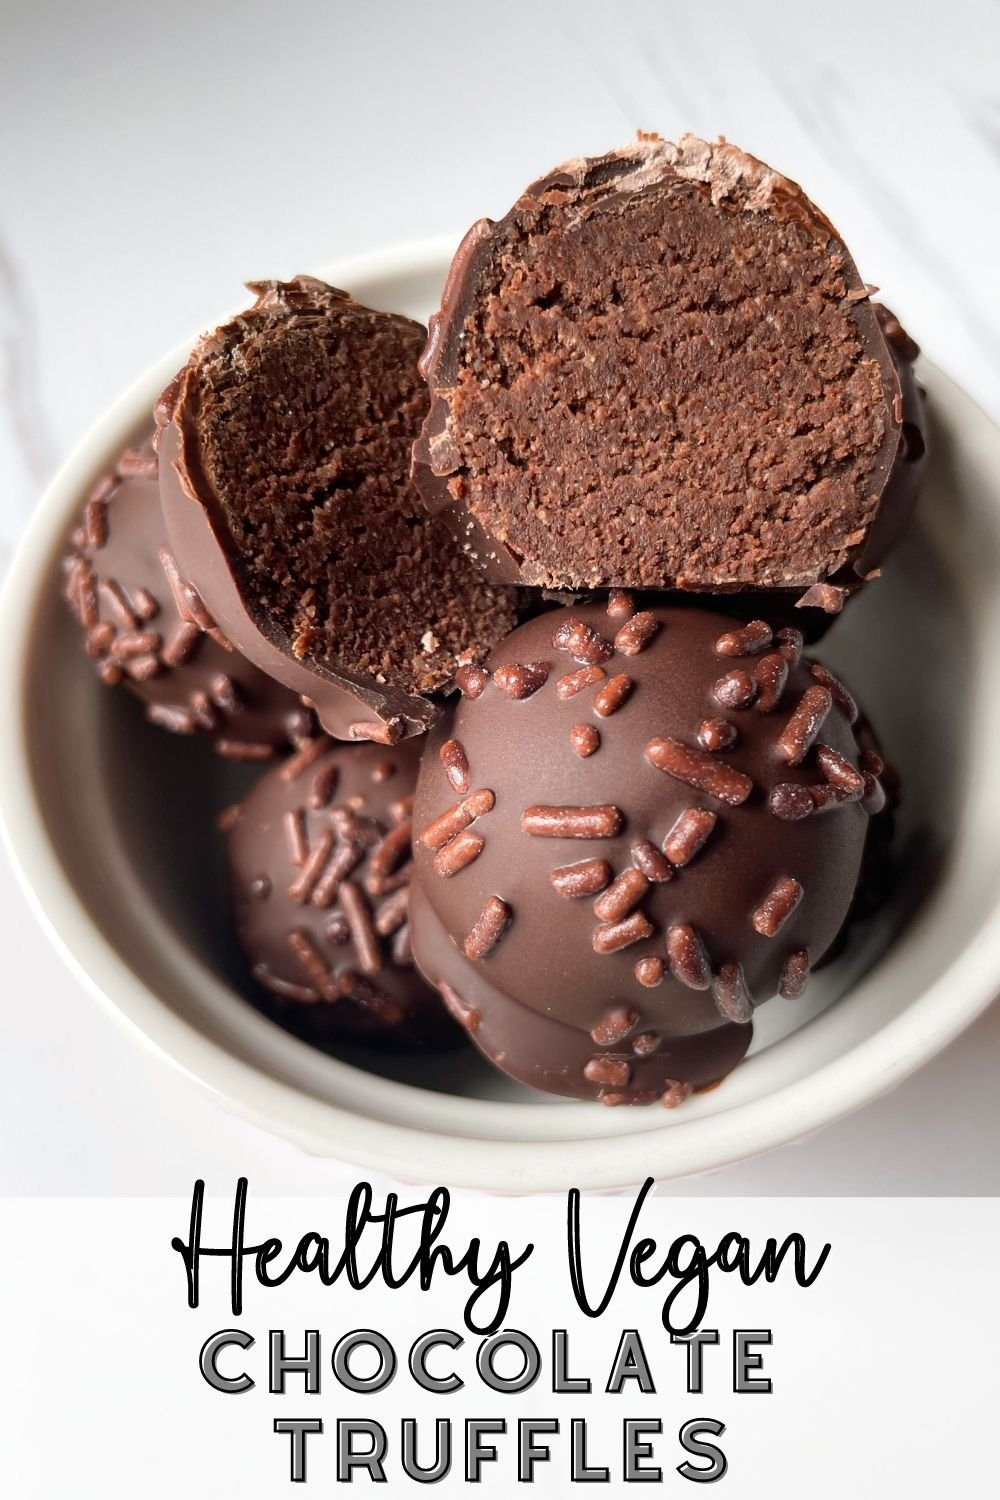 chocolate truffles in bowl on marble background